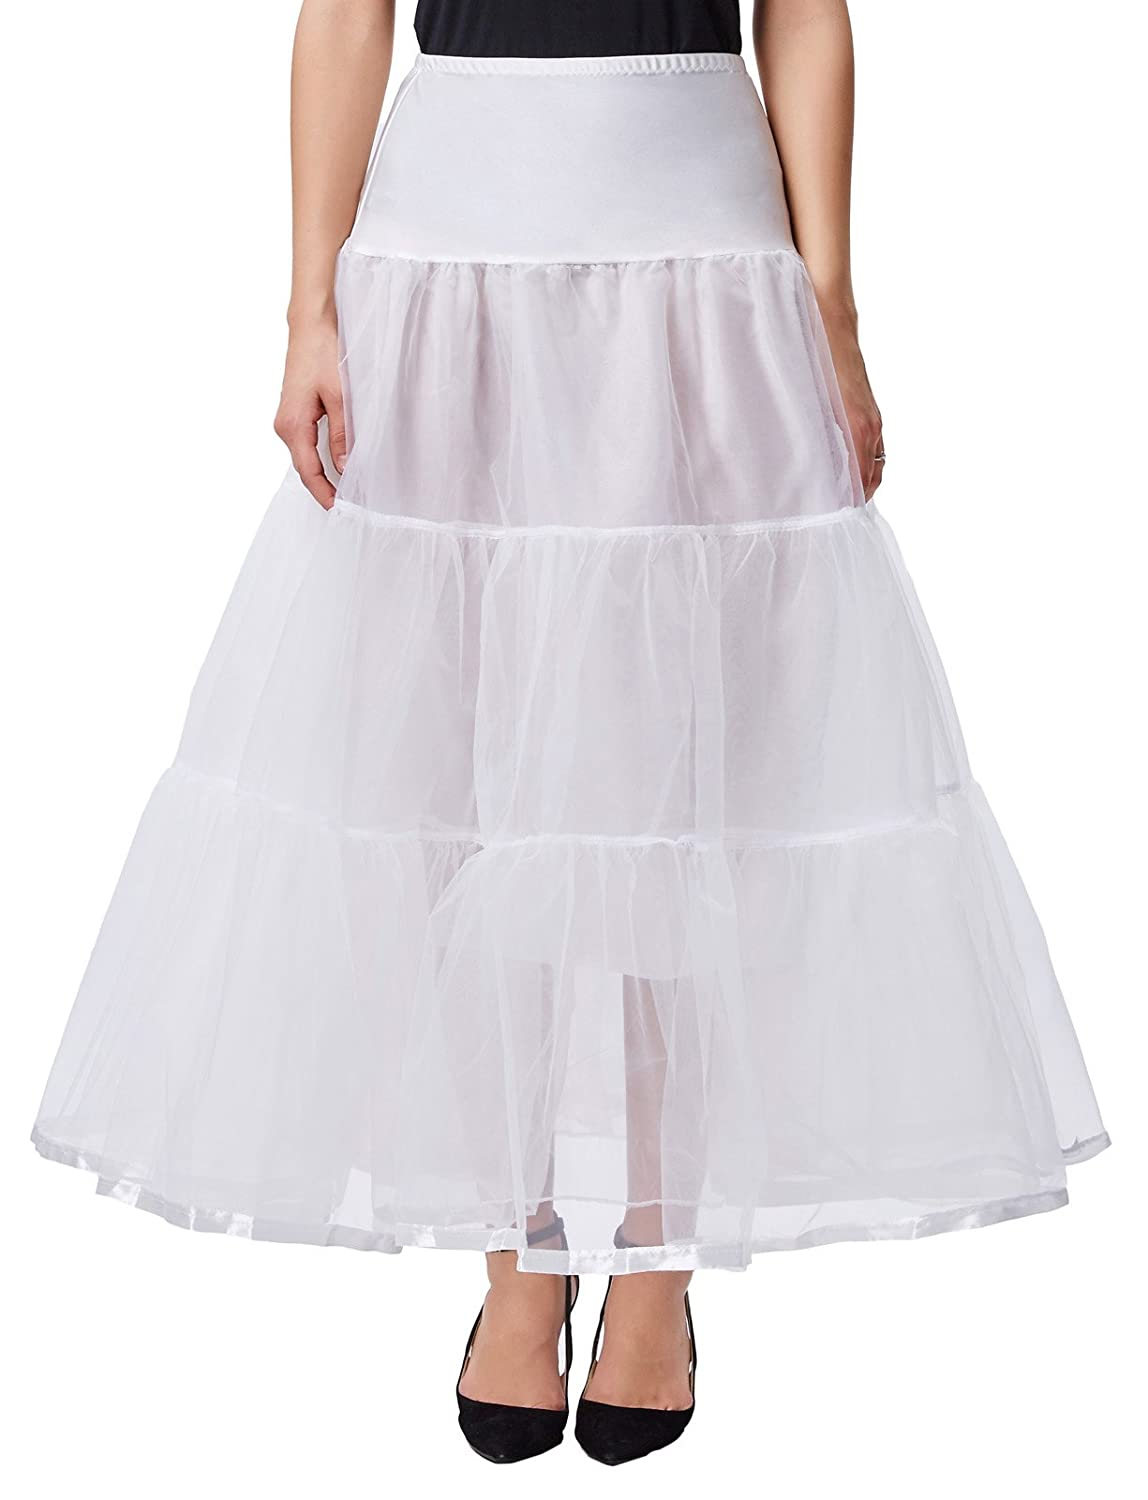 1950s Petticoat History  Ankle Length Petticoats Wedding Slips Plus Size S-3X GRACE KARIN Womens $19.99 AT vintagedancer.com